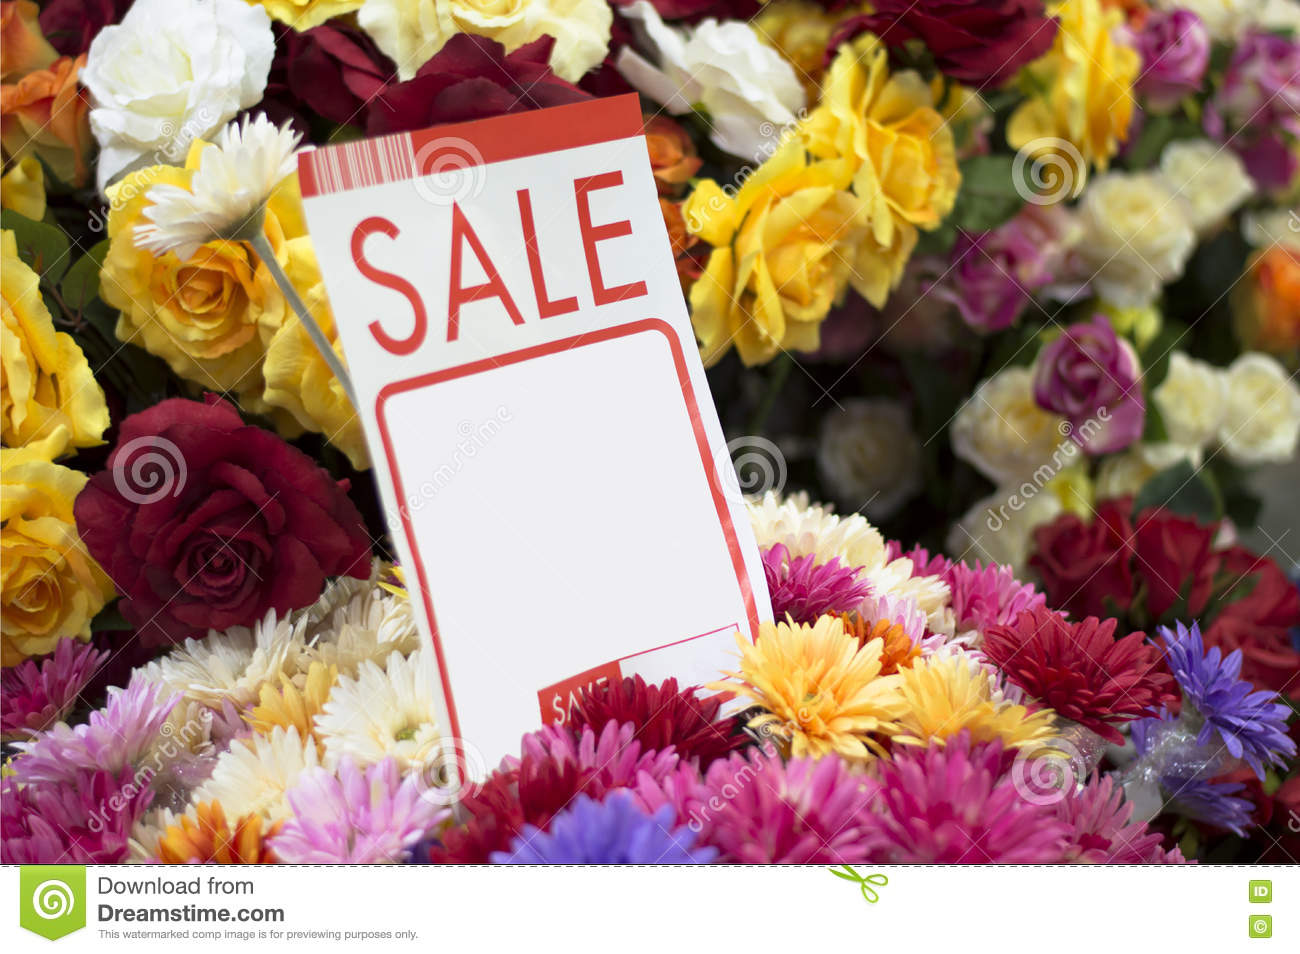 Label, Price, Sale, Flowers, Fake, Plastic Flowers, Vase, Beautiful,  Colorful